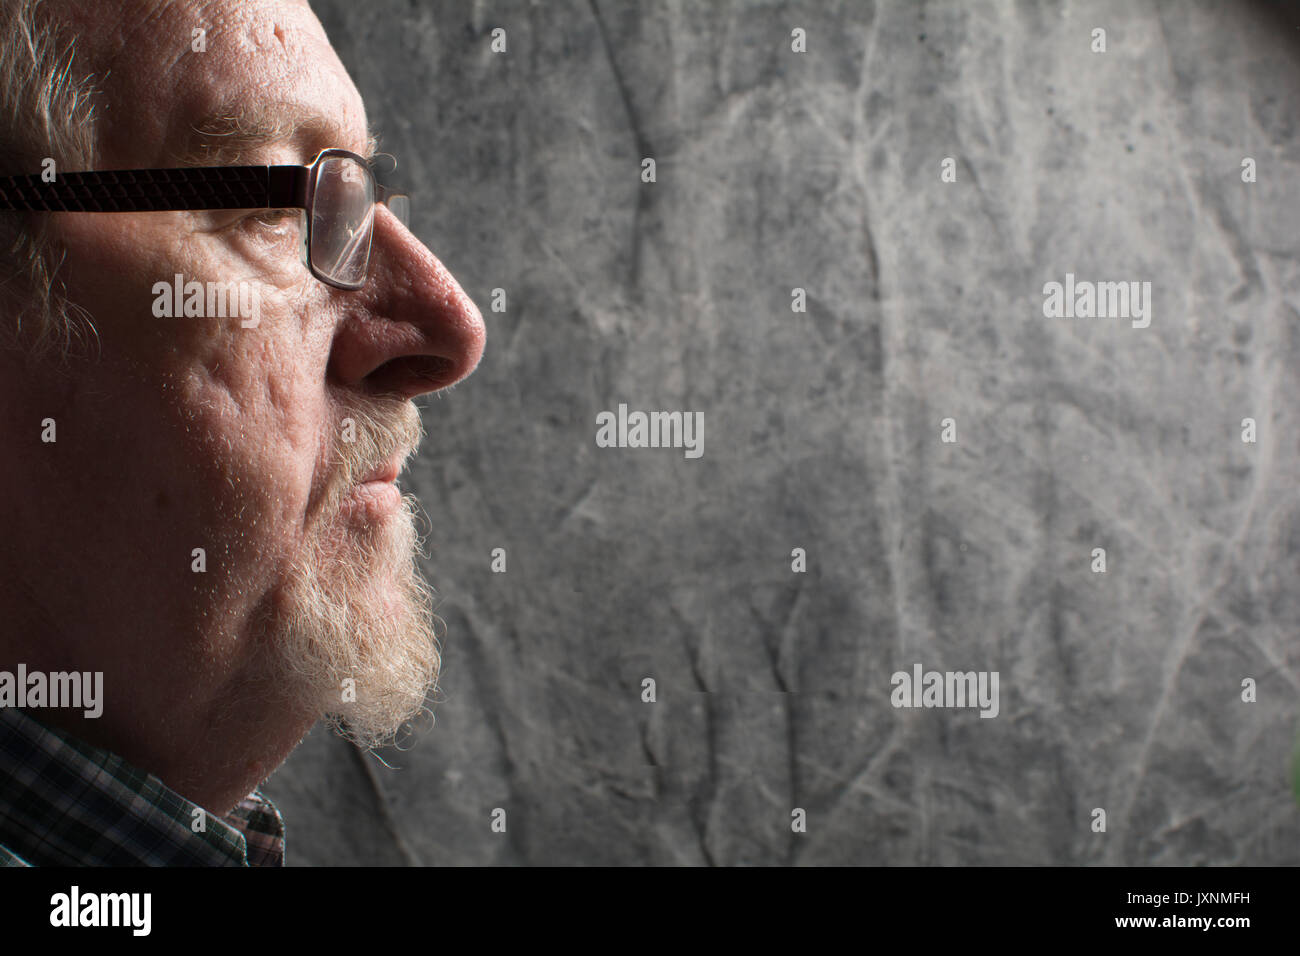 profile of an older man with a beard and spectacles, in vacant or pensive mood - Stock Image